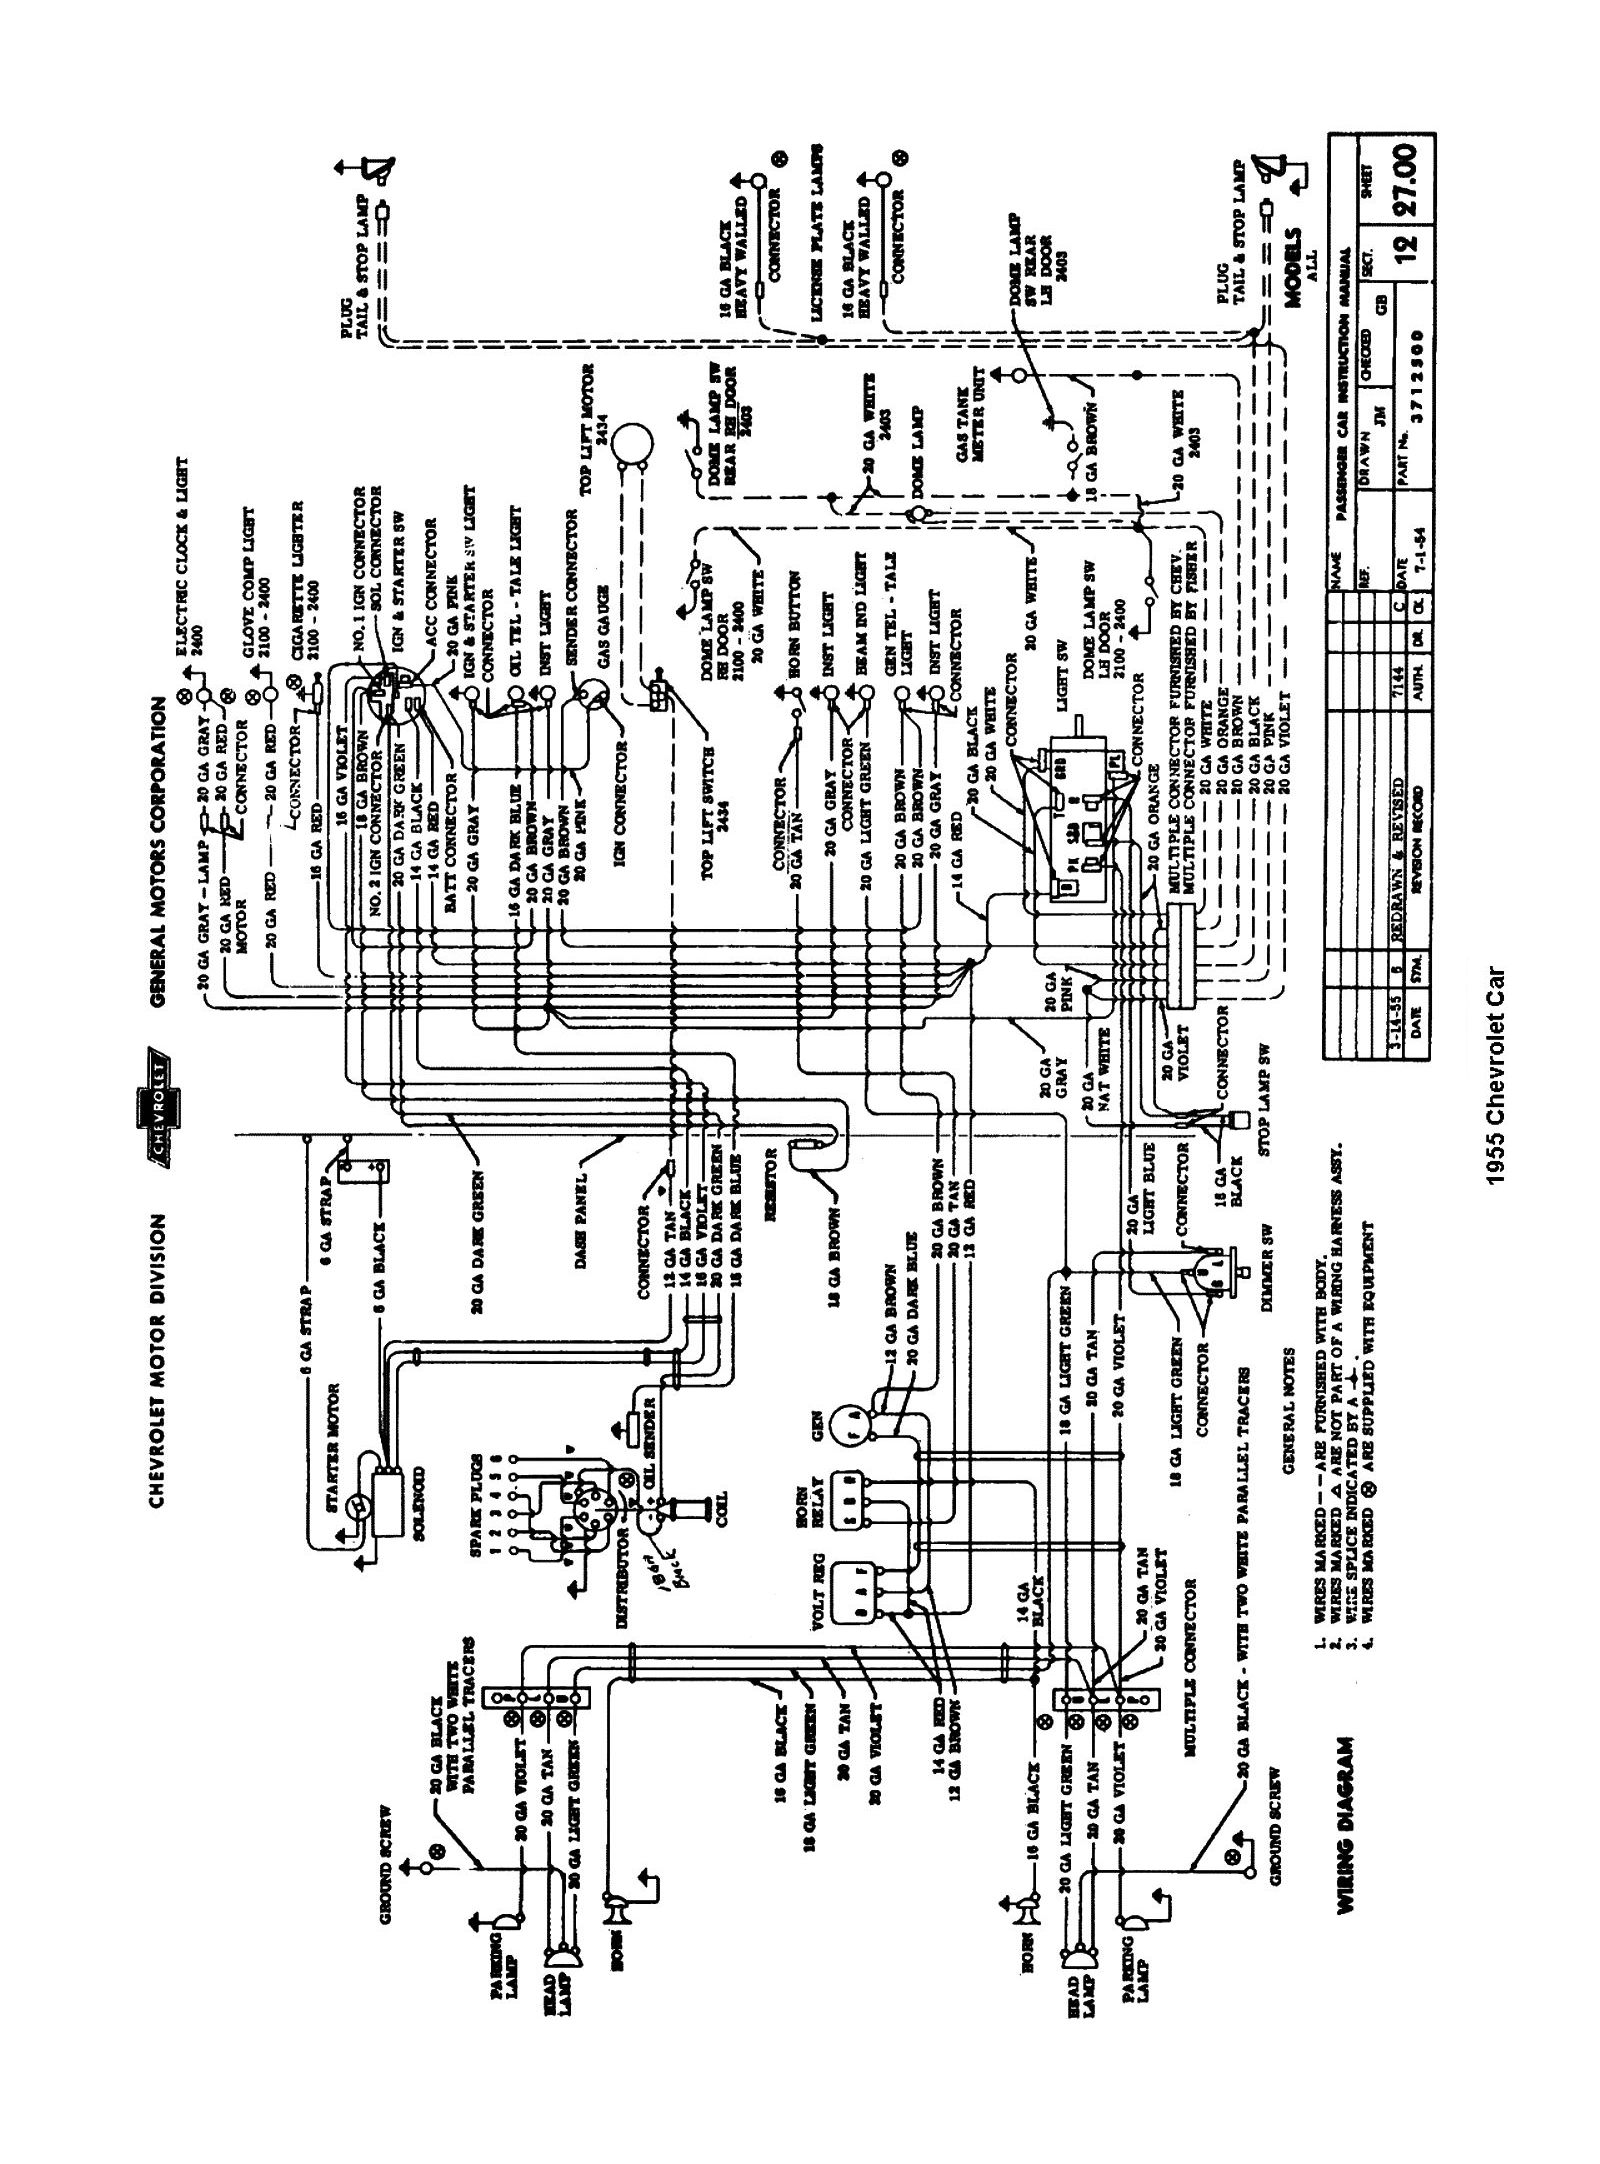 Wiring Diagram For A 1951 Chevy Truck Library 1956 Ford F100 1957 Turn Signal Auto Electrical Rh Stanford Edu Uk Co Gov